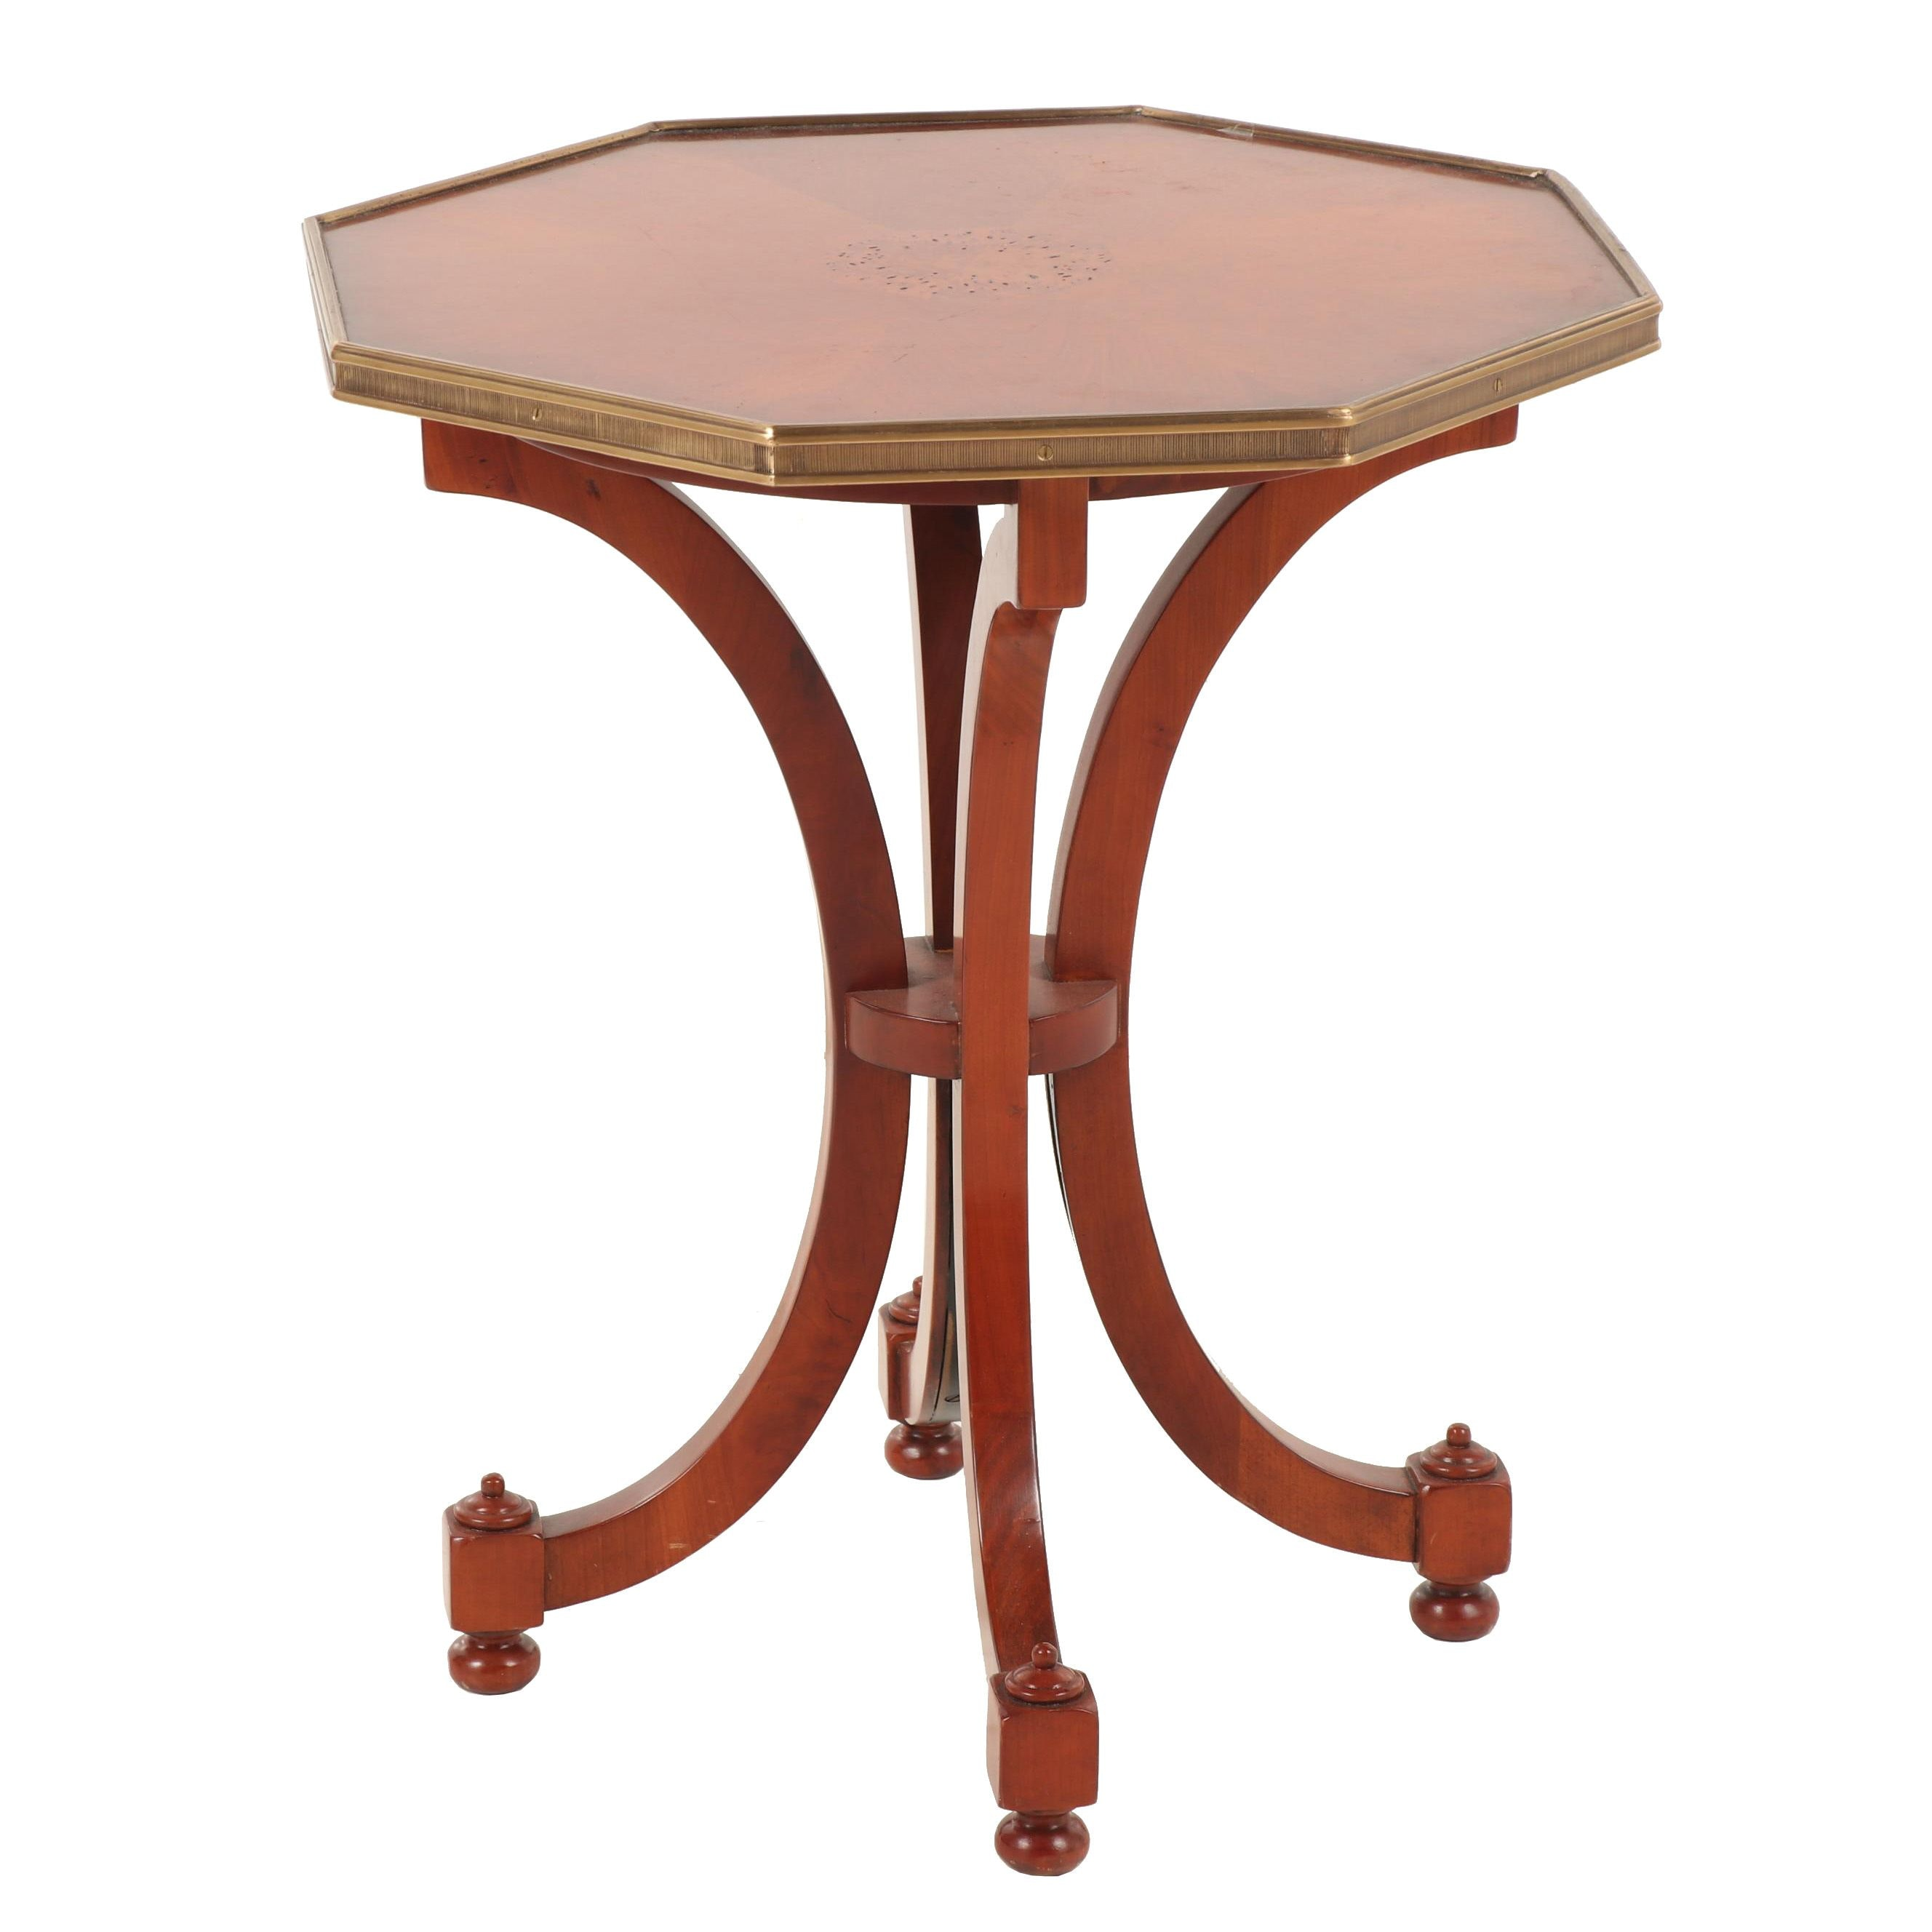 Contemporary European Cherry and Burlwood Brass-Mounted Gueridon Table